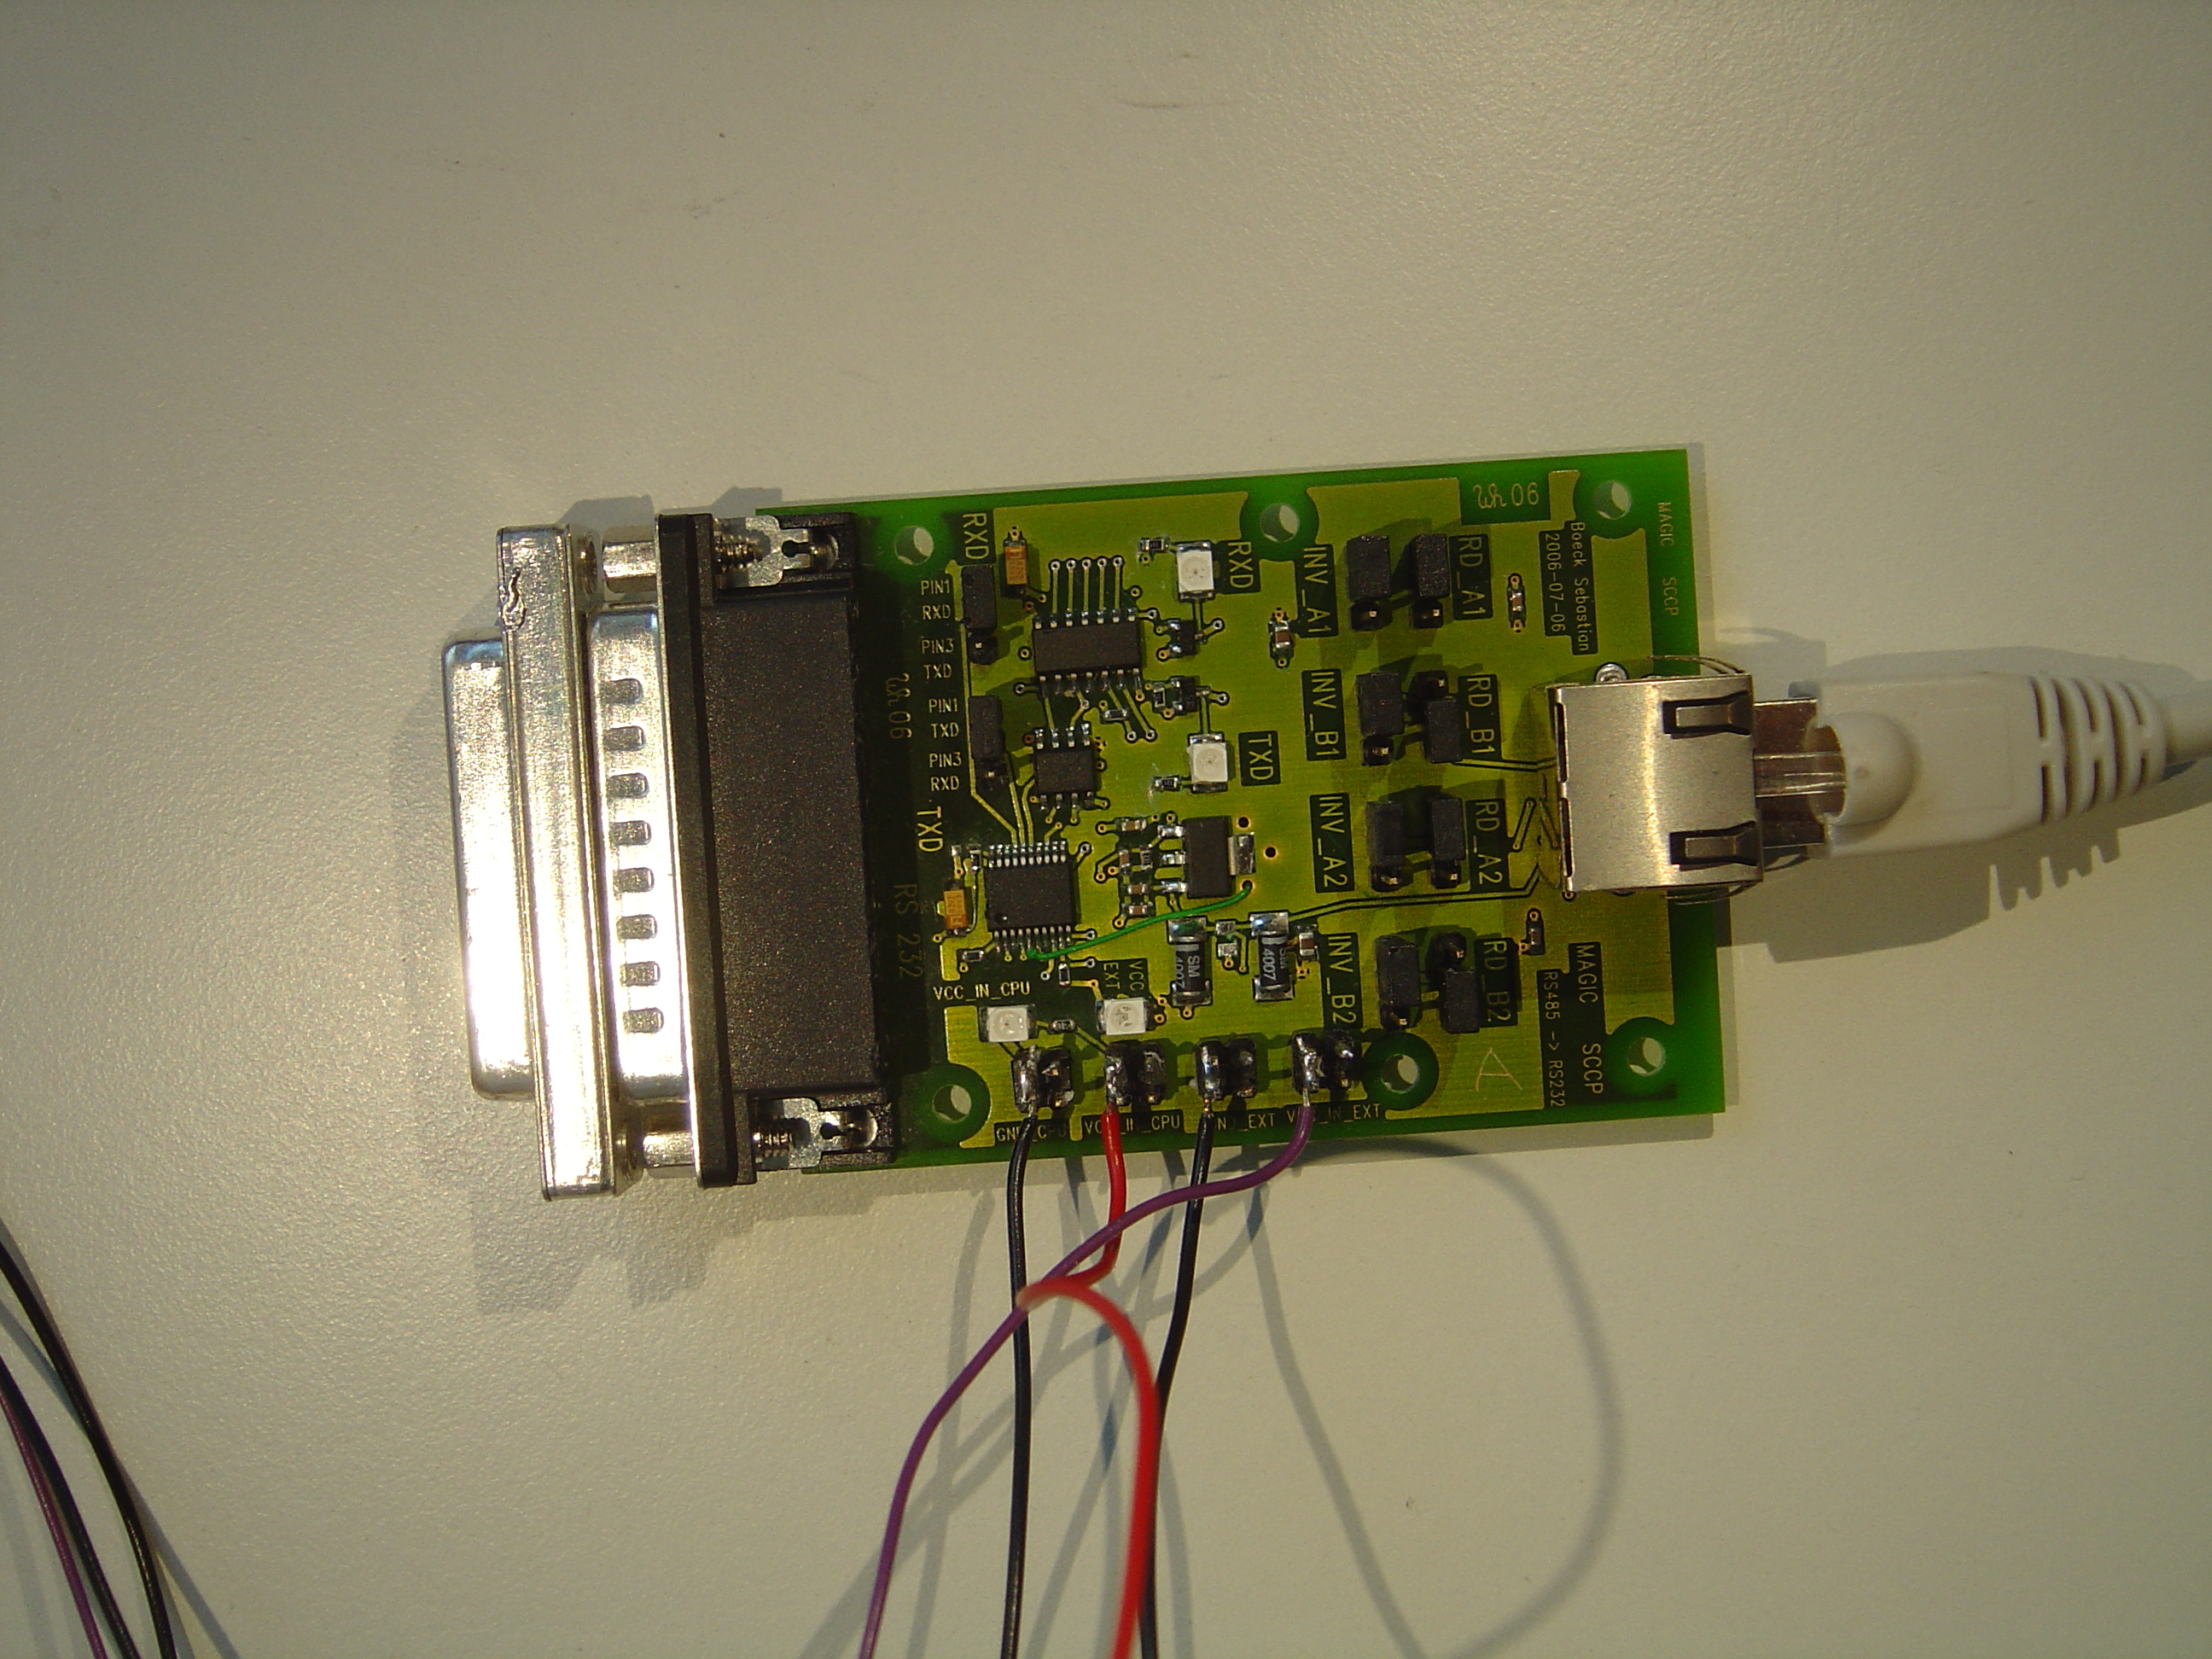 The Slow Control For Magic Ii Whaberer Circuit Boards Like Appears Rs232 To Rs485 Board Top